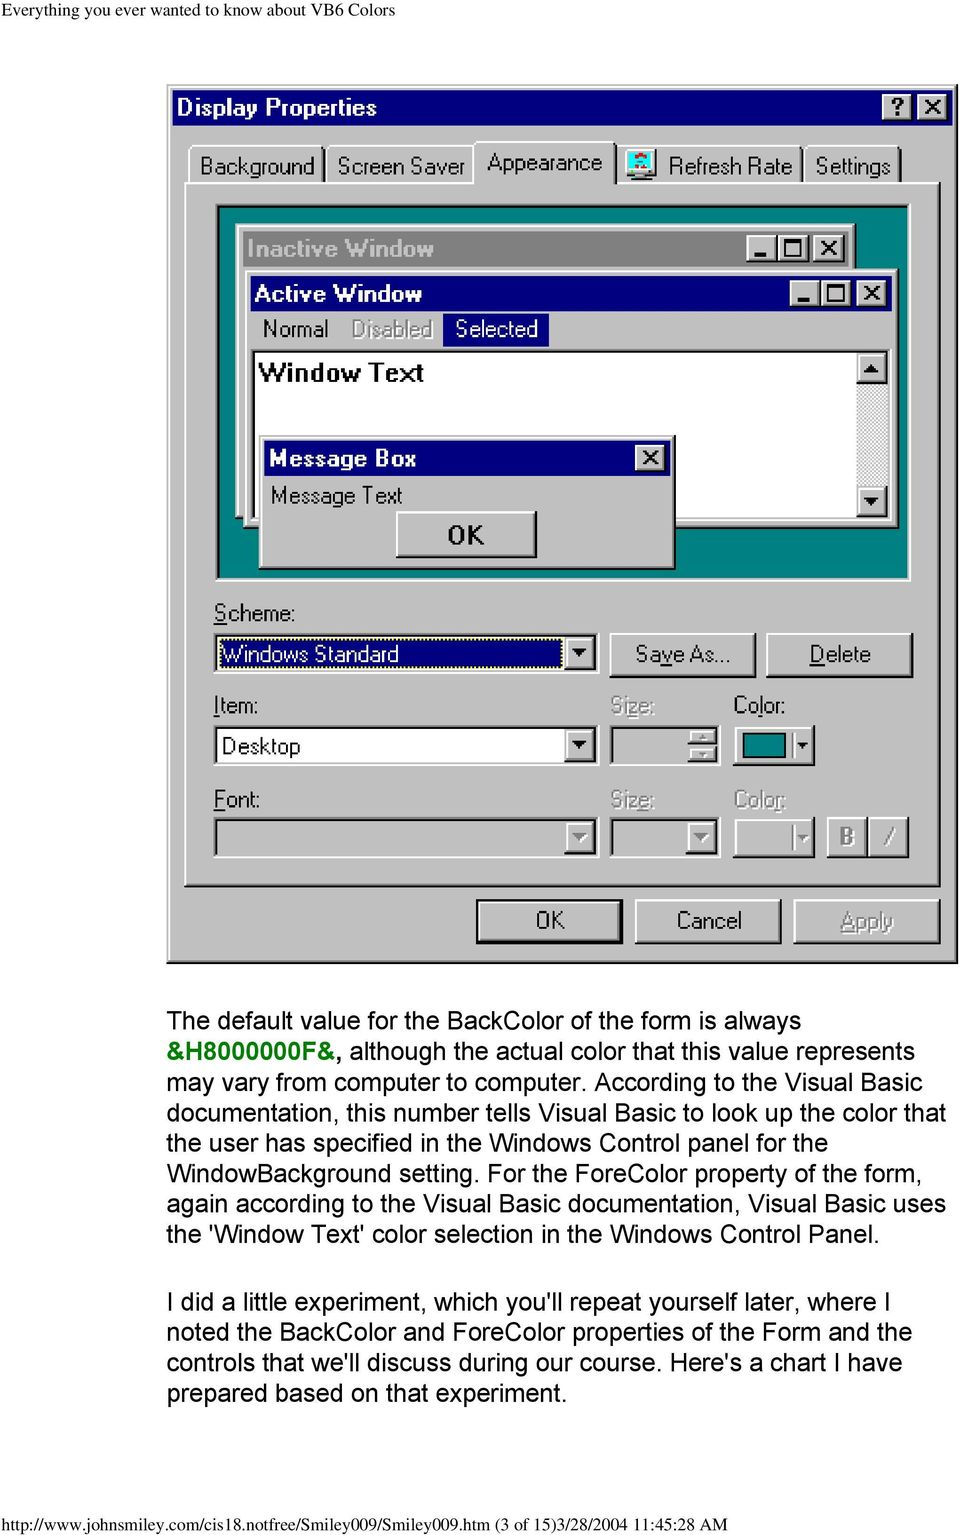 Everything you wanted to know about Visual Basic 6 Colors - PDF